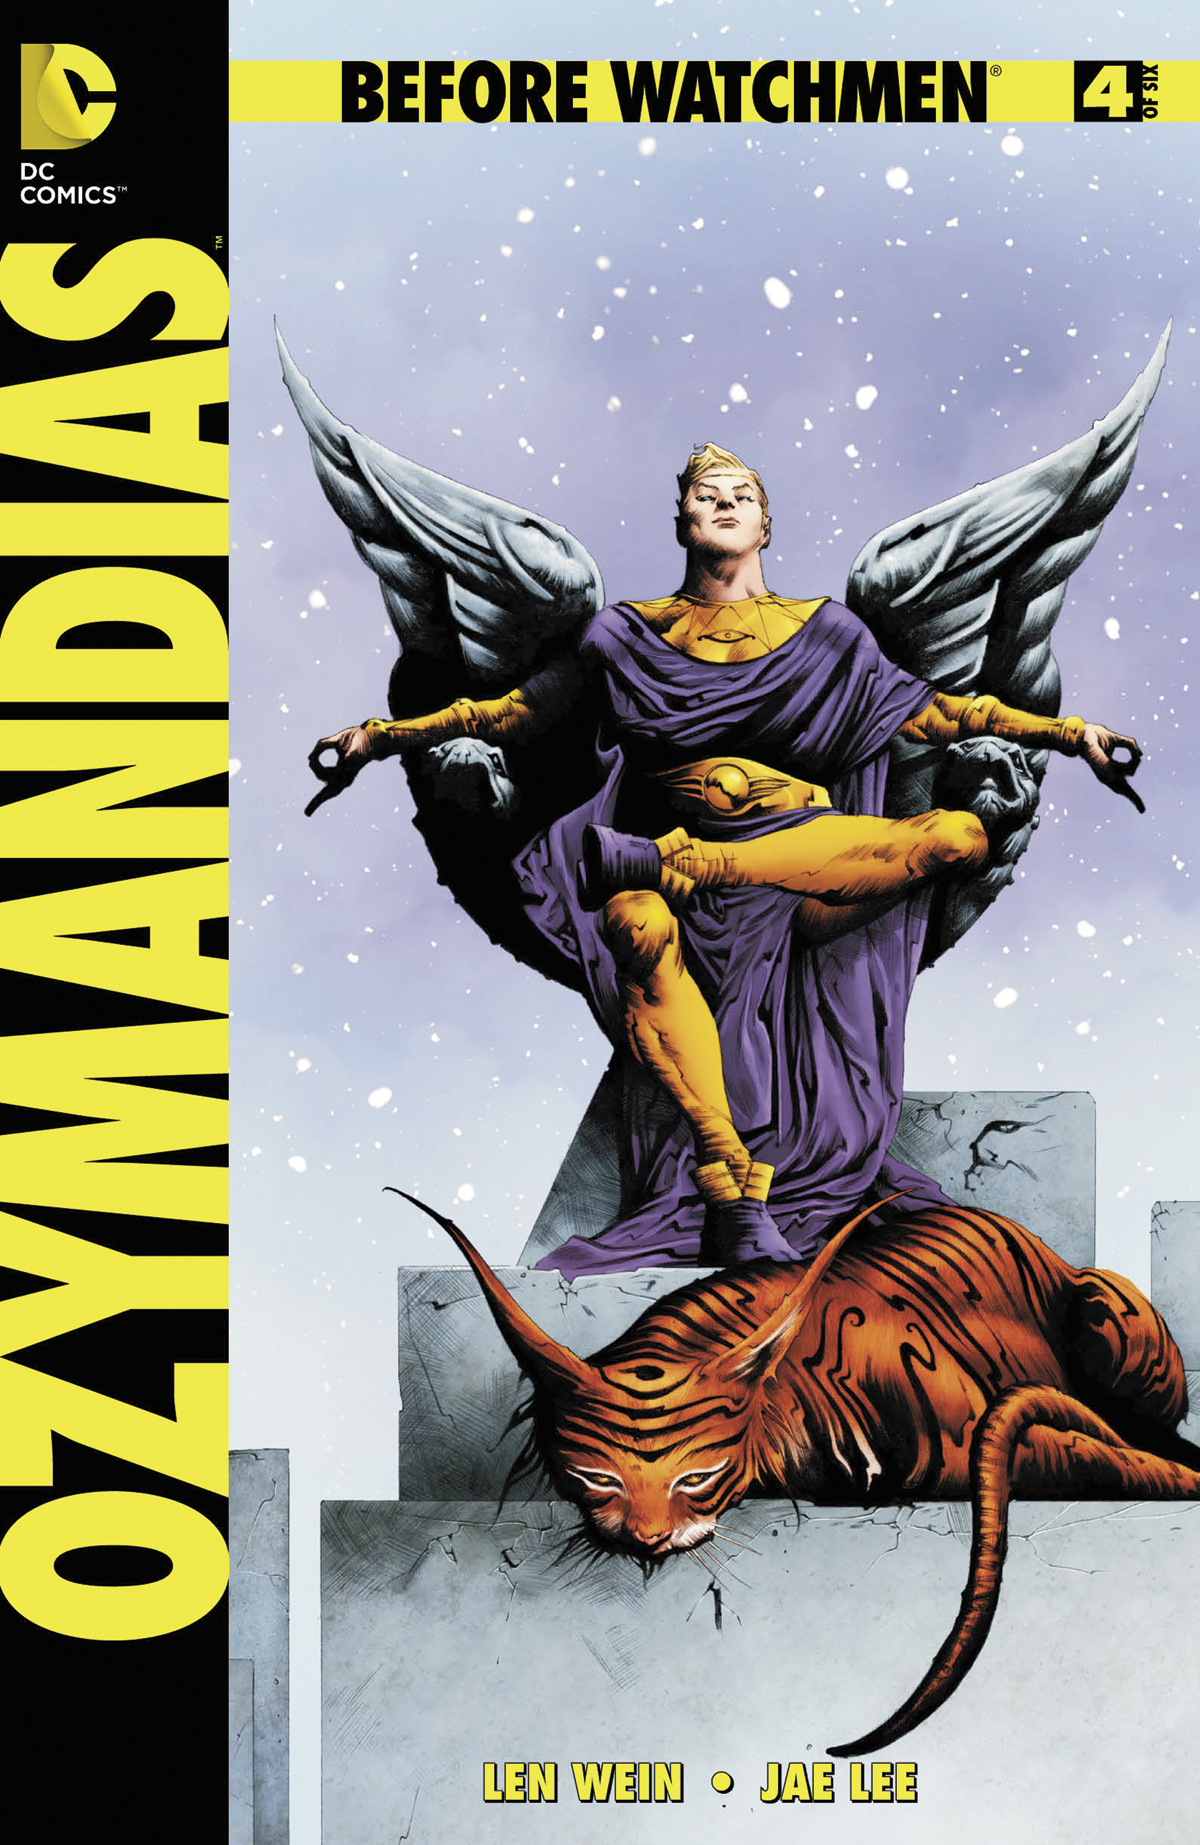 BEFORE WATCHMEN OZYMANDIAS #4 (OF 6) (MR)